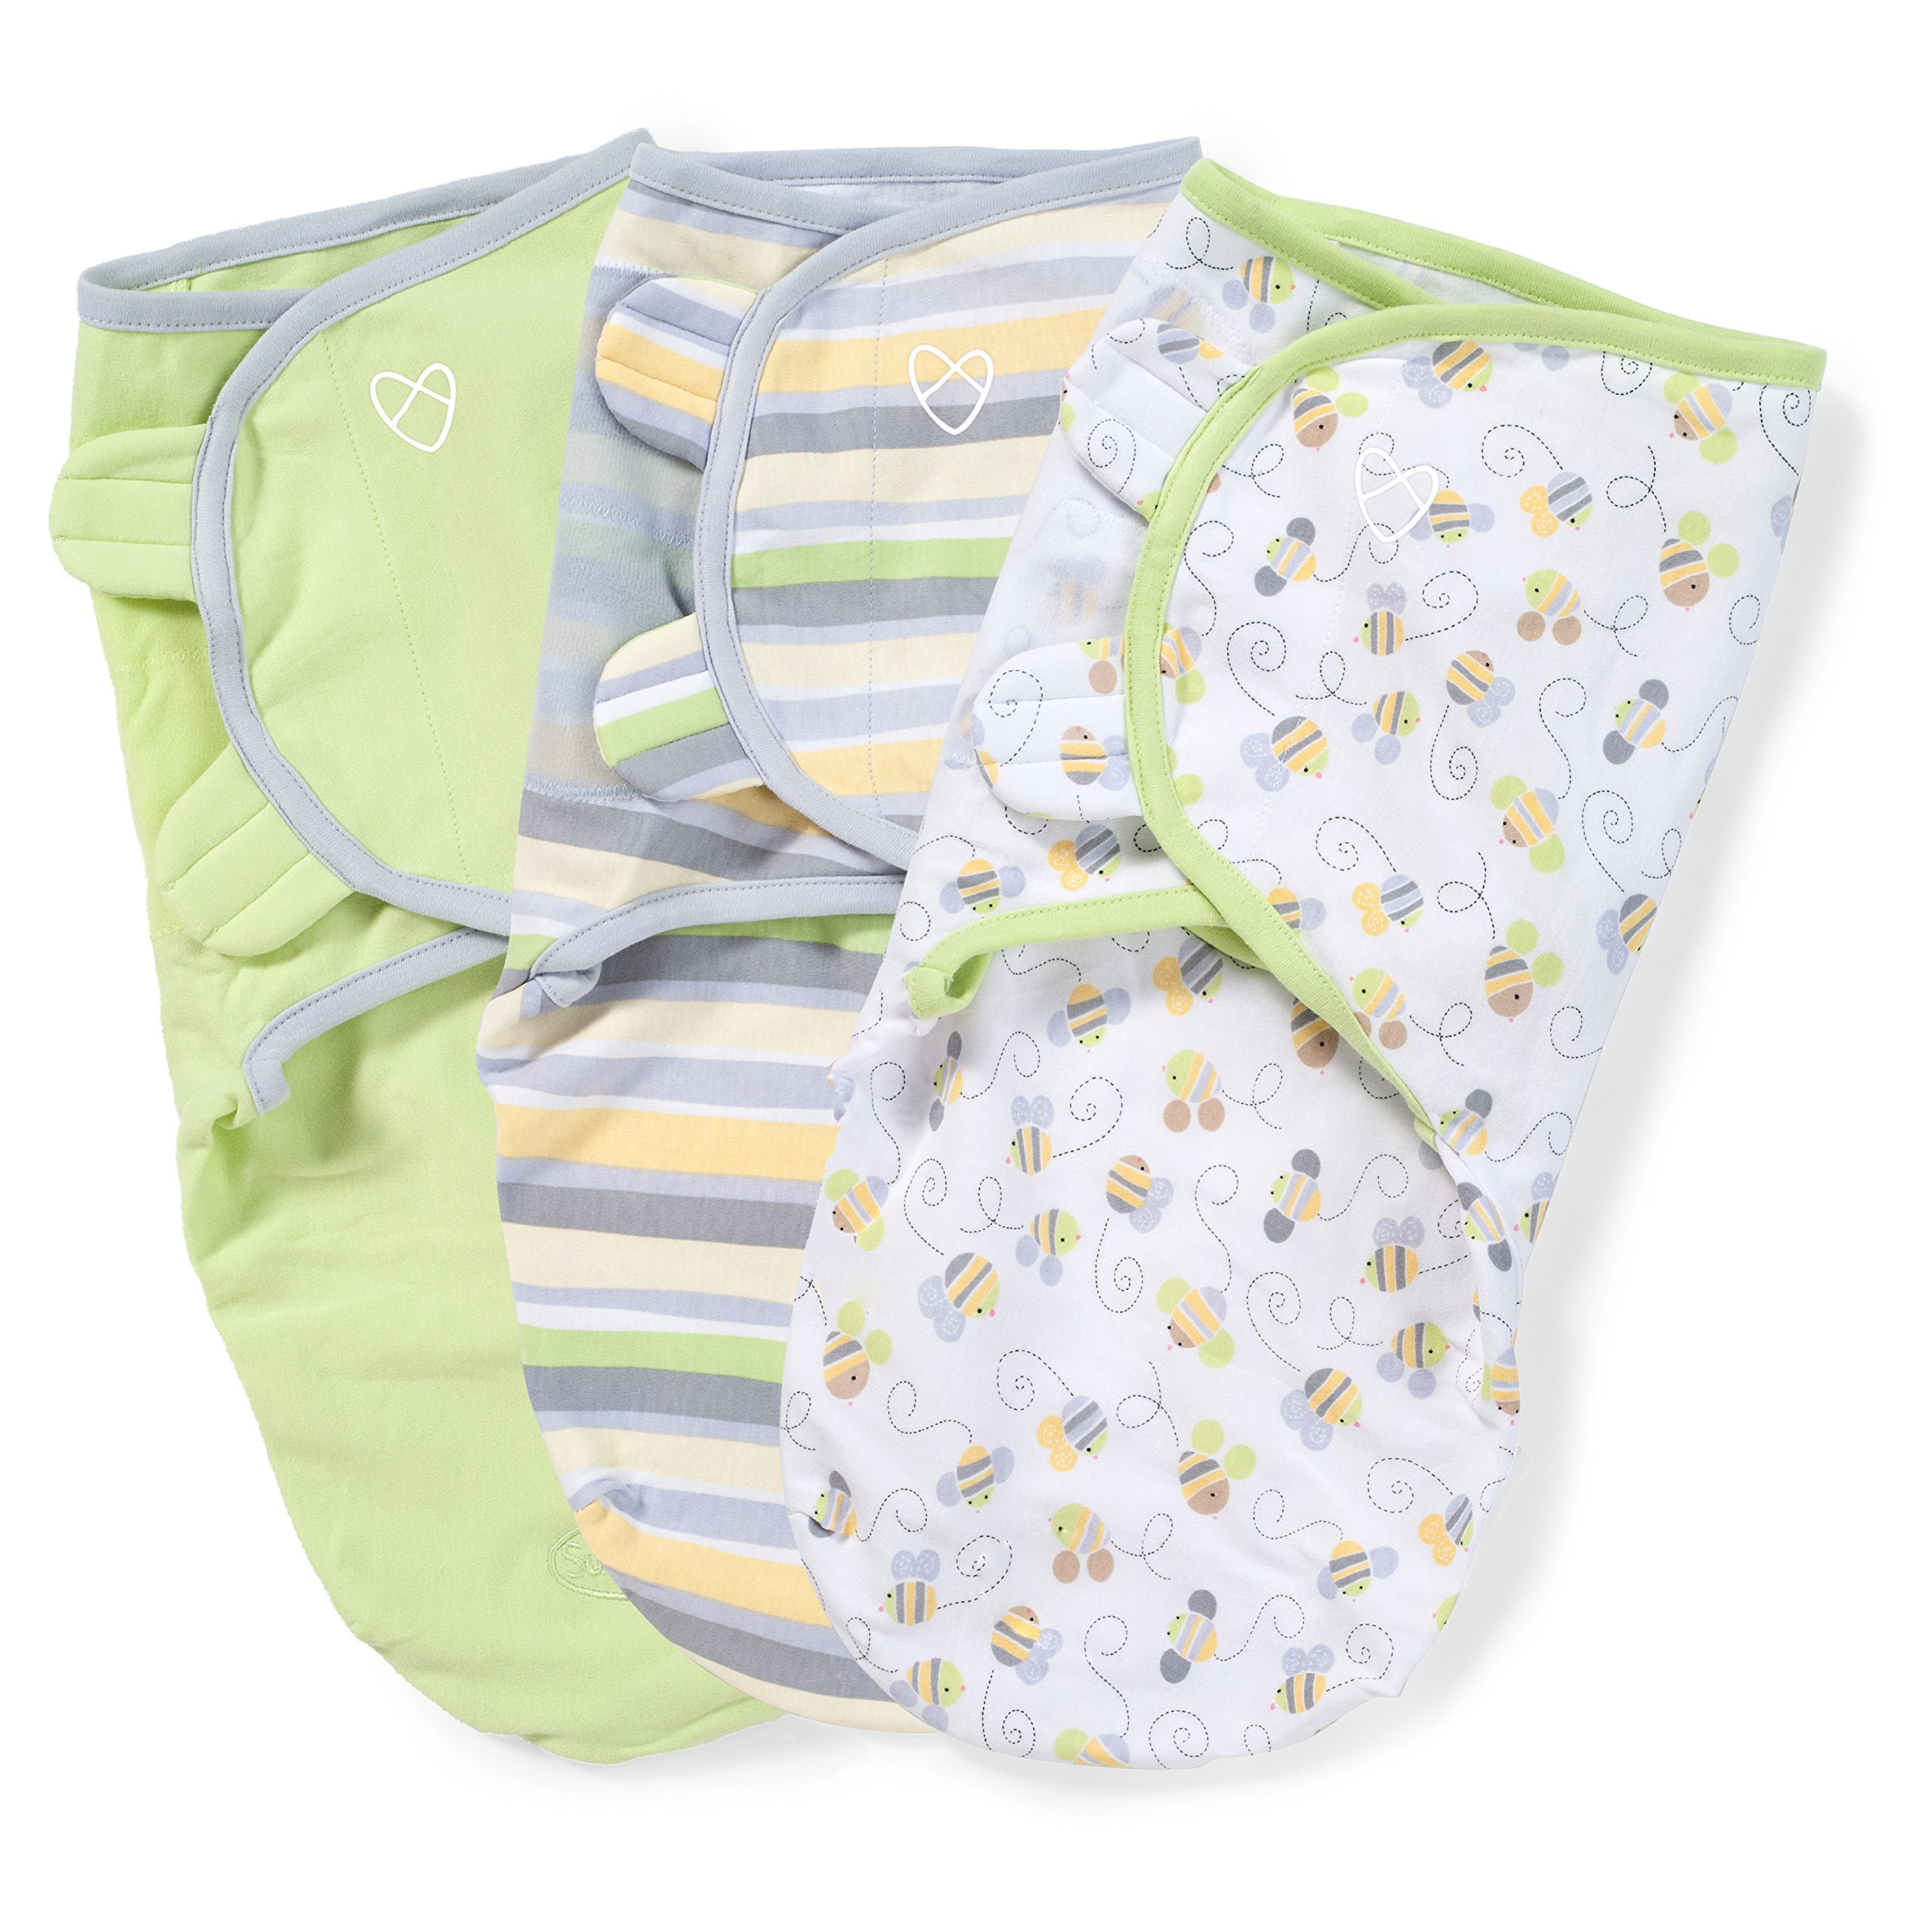 SwaddleMe Original Swaddle 3-PK, Busy Bees (SM) by SwaddleMe